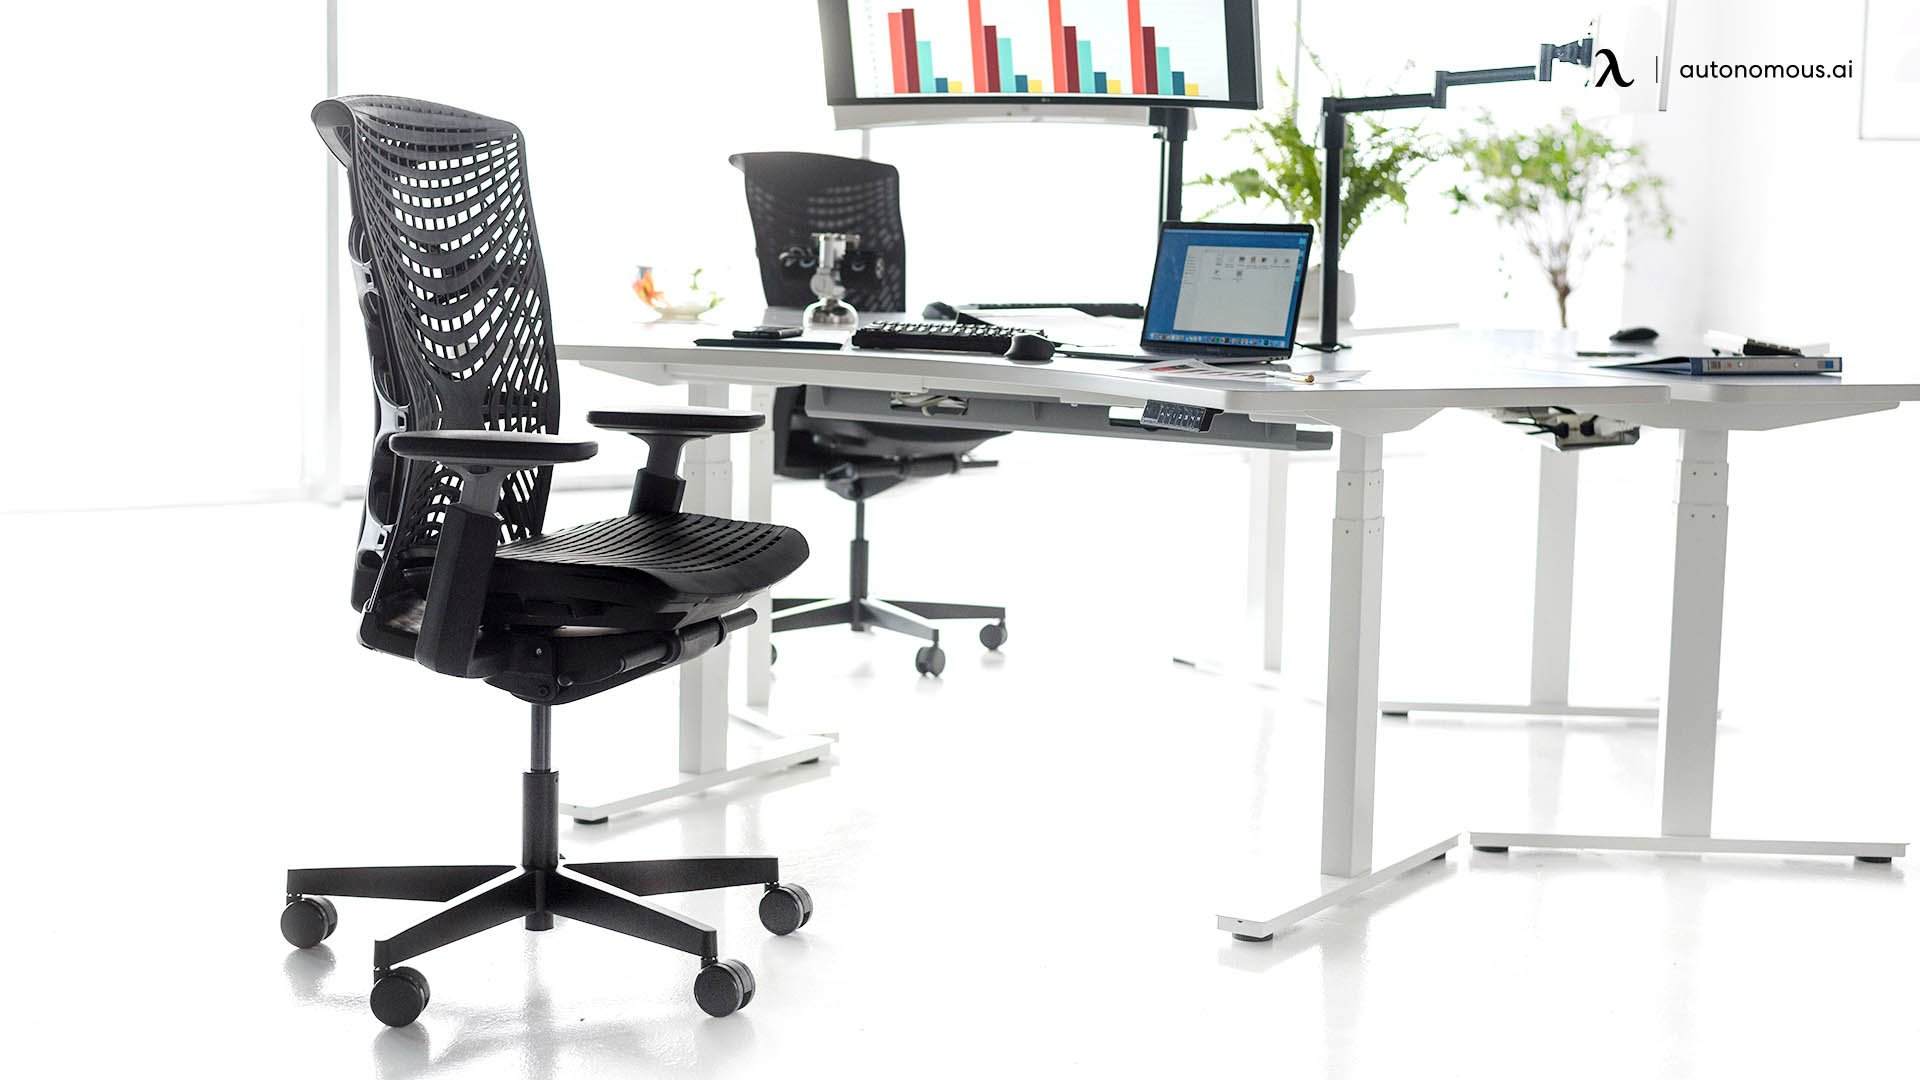 What Do You Need to Consider for an Ergonomic Standing Workstation Setup?